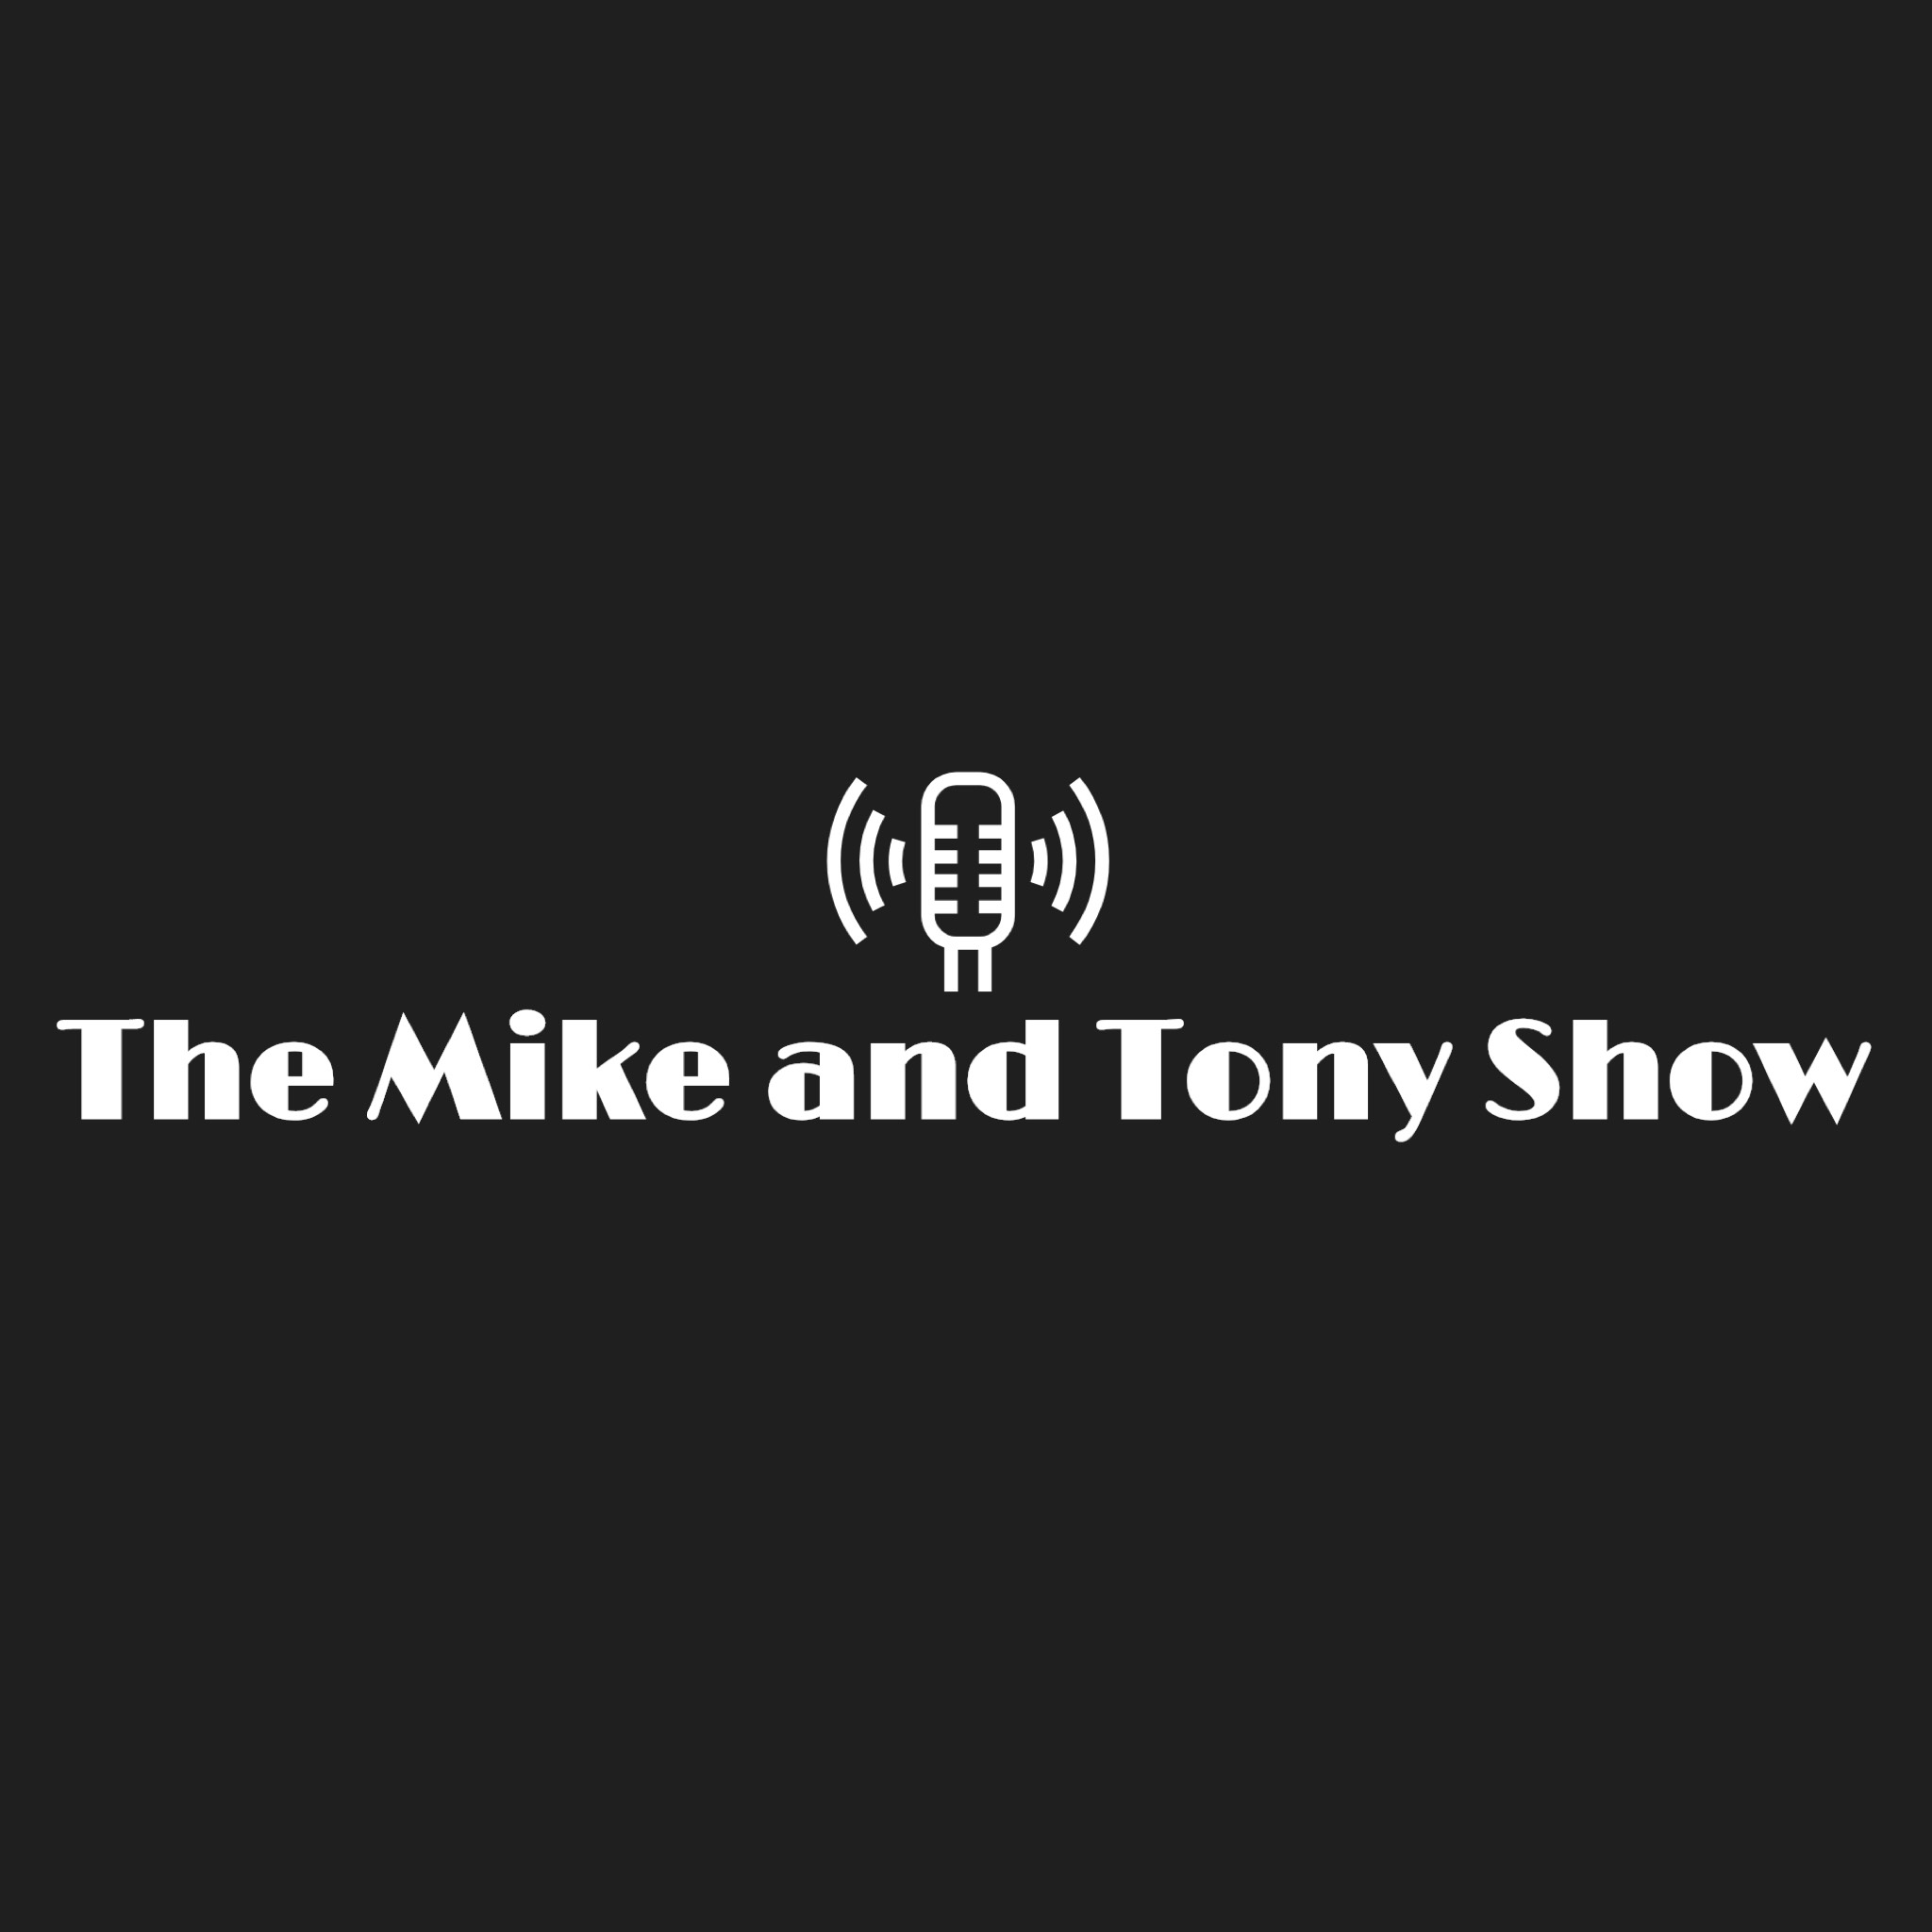 The Mike and Tony ShowA-Chording to Mike and Tony